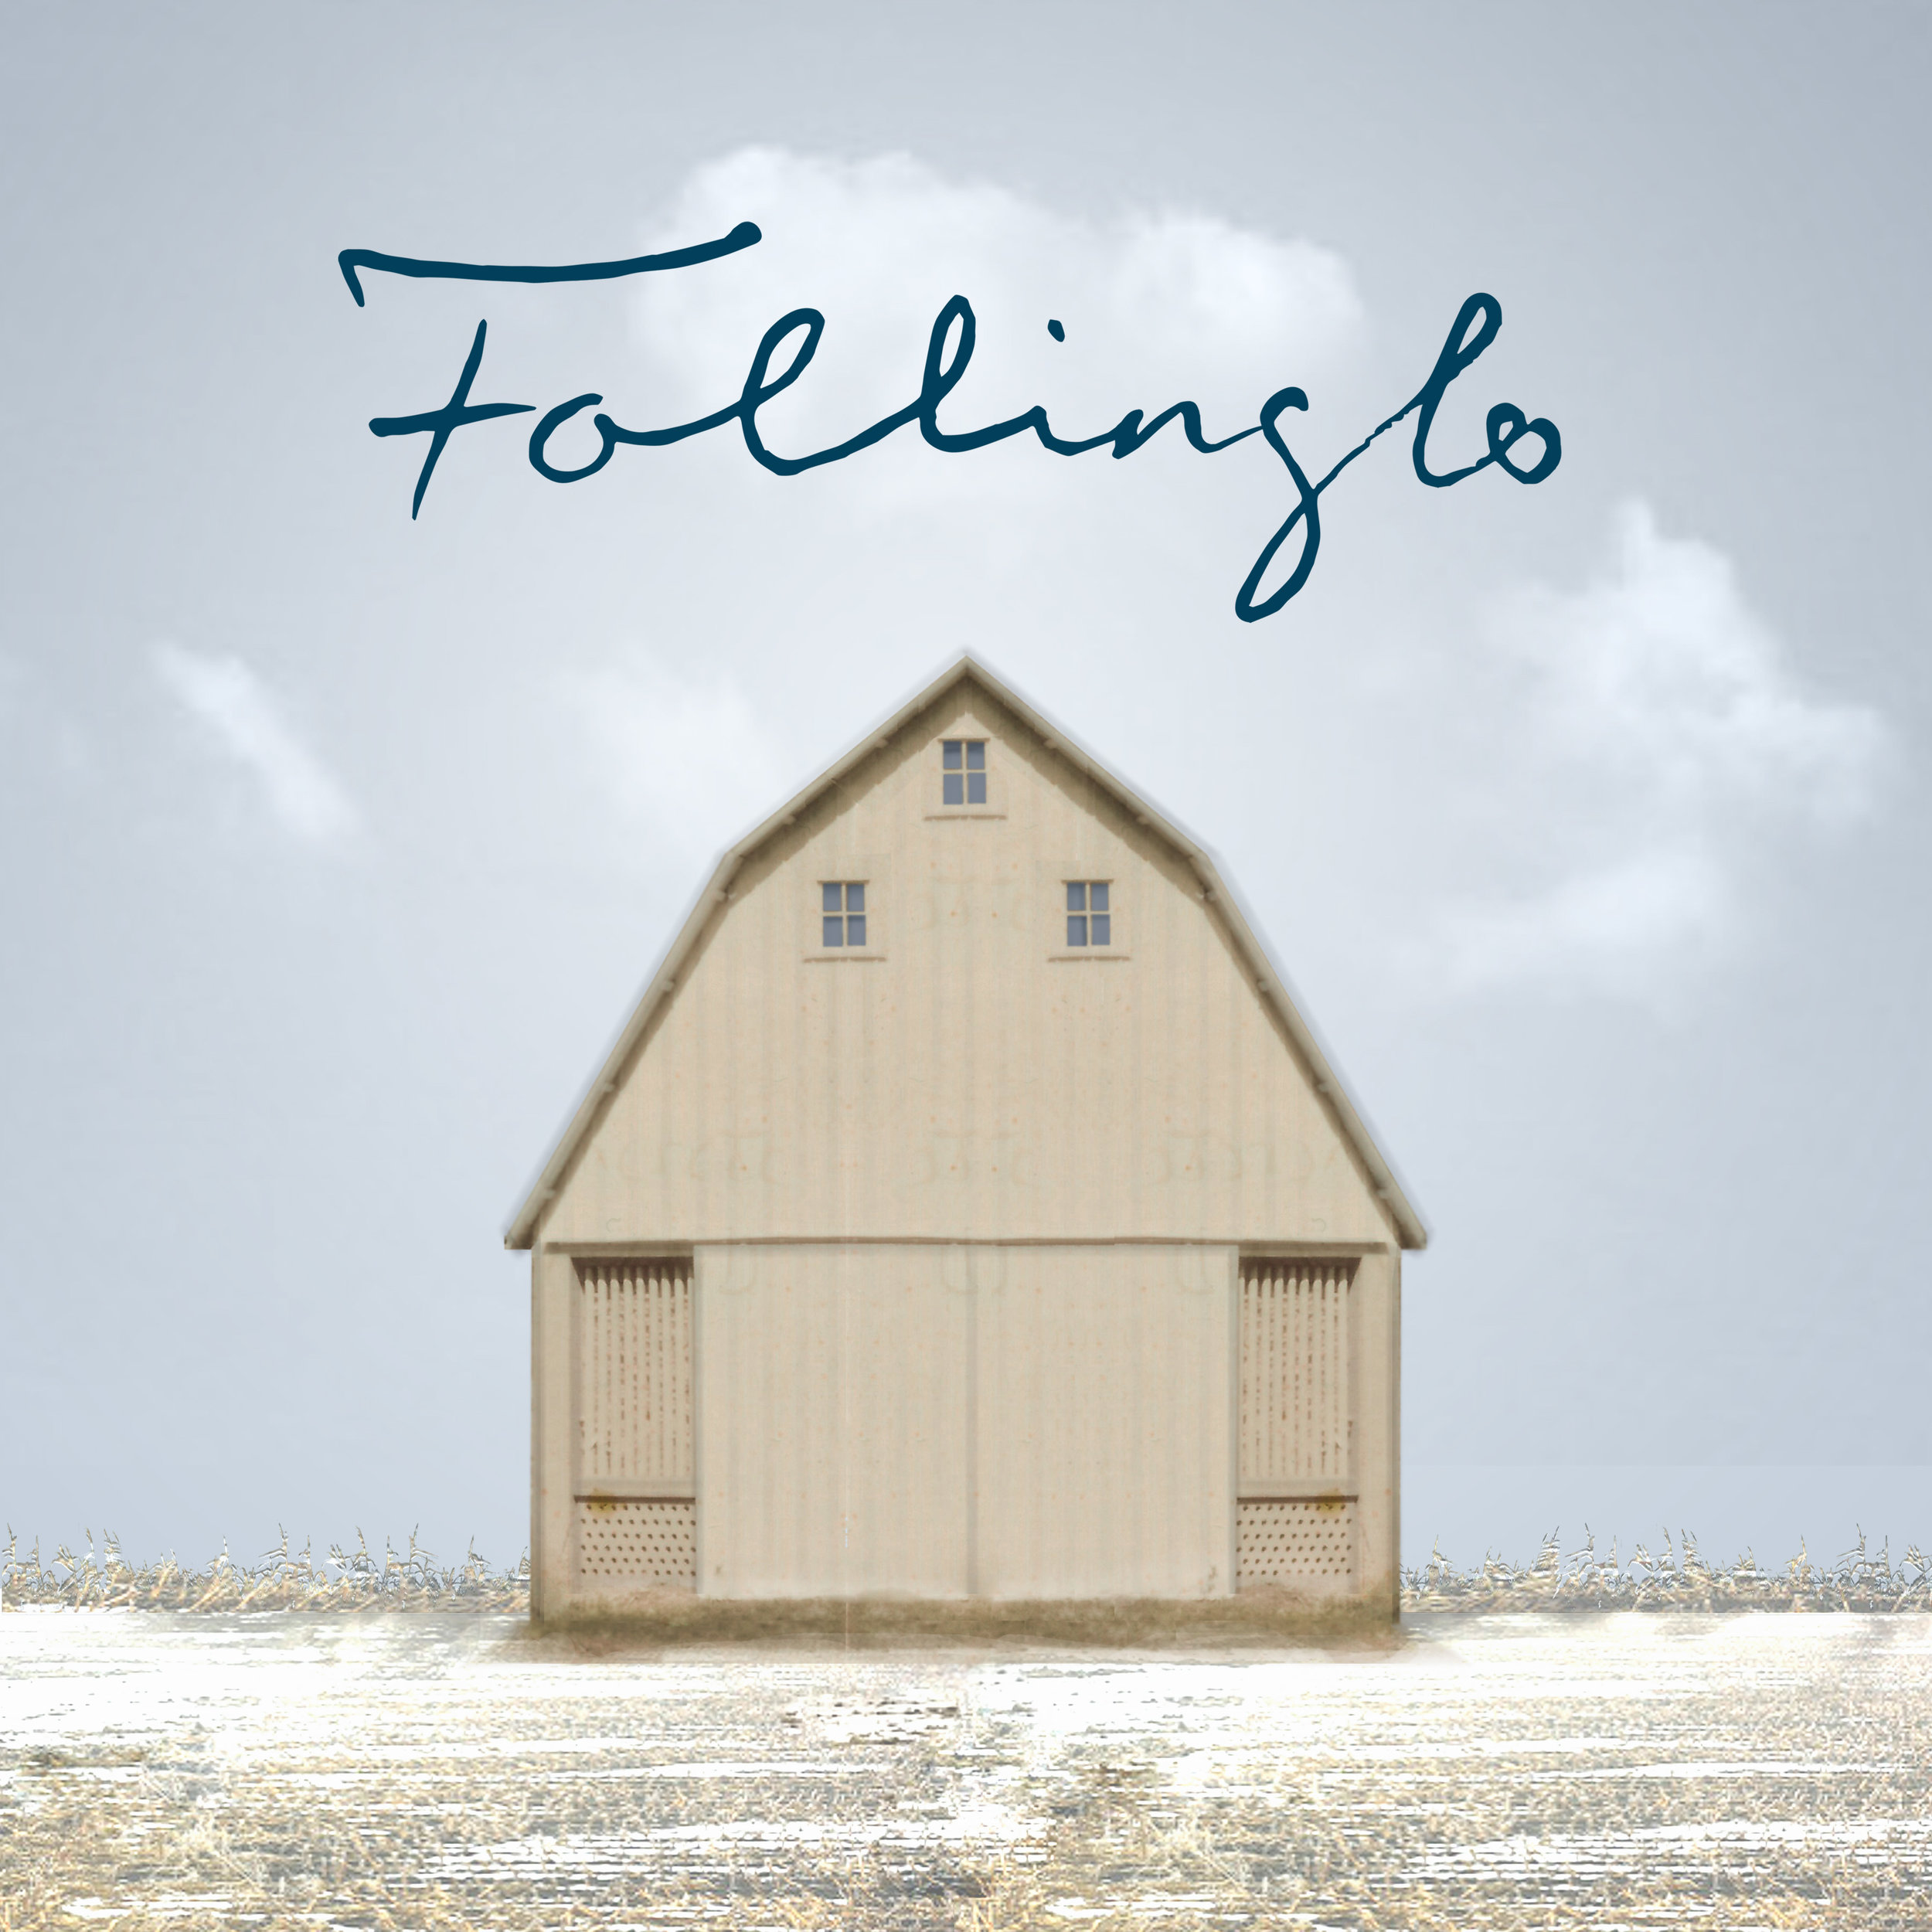 Follinglo Podcast cover art - Designed by Katie Crumrine, daughter of Ingeborg Tjernagel Schey. The image was created using a photo of the corn crib destroyed in the fire caused by the explosion.